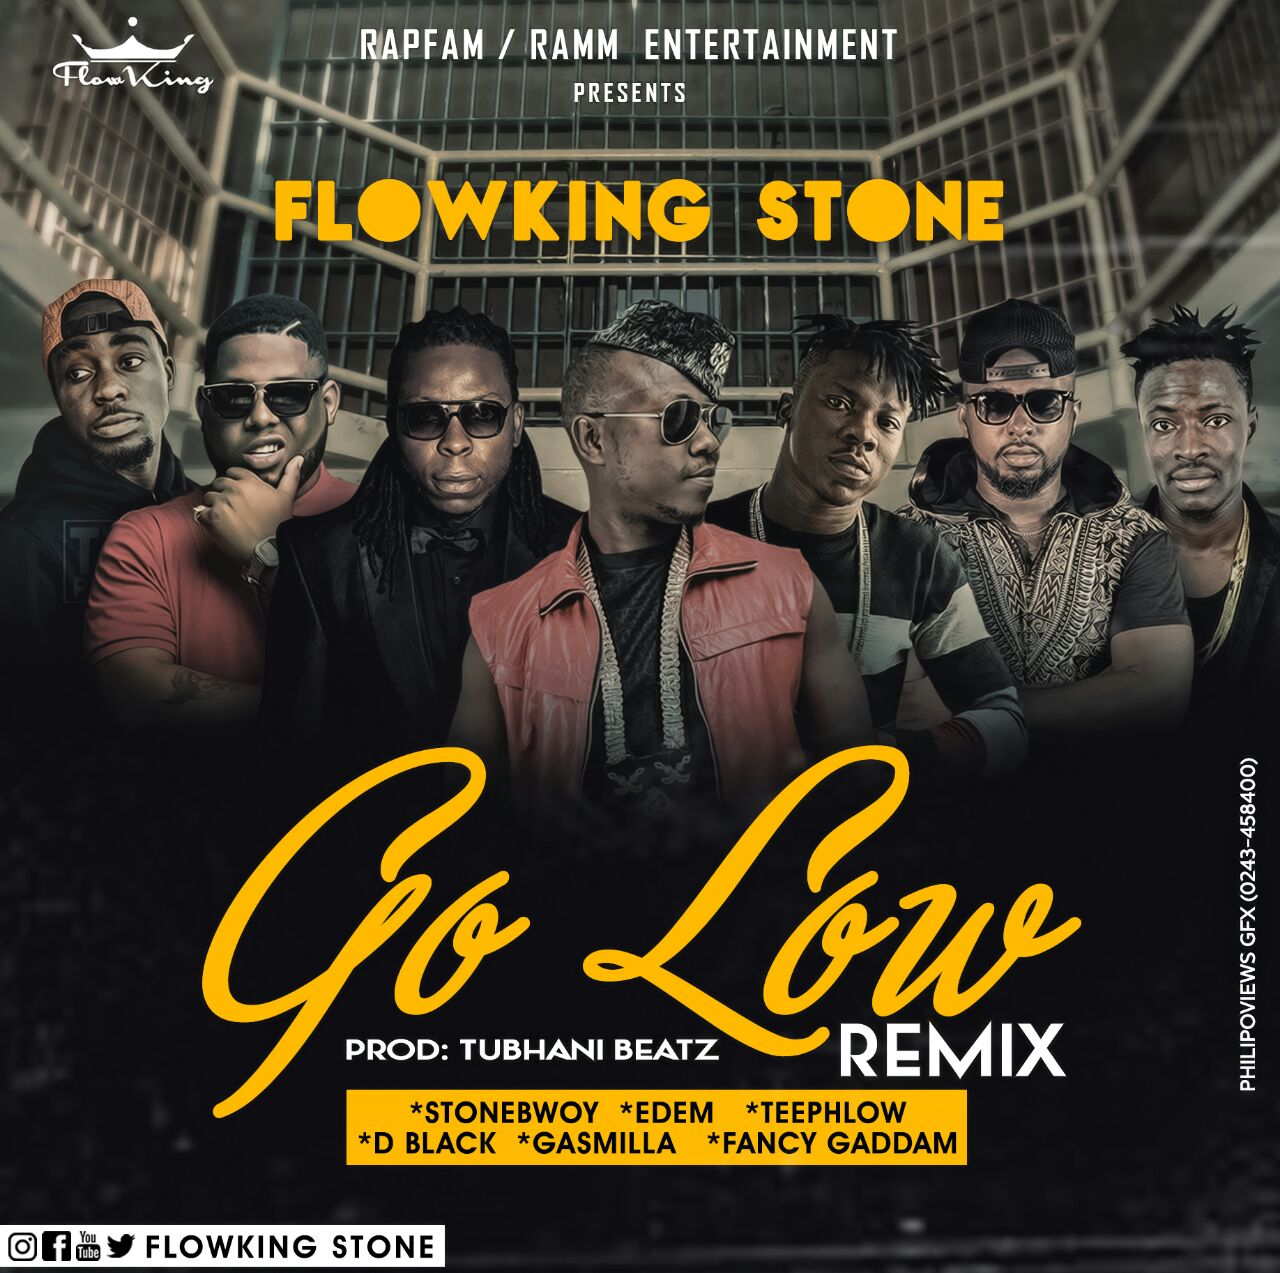 FowKing Stone – Go Low Remix ft Stonebwoy Edem D Black Teephlow Gasmilla Fancy Gadam Prod by TubhaniBeatz